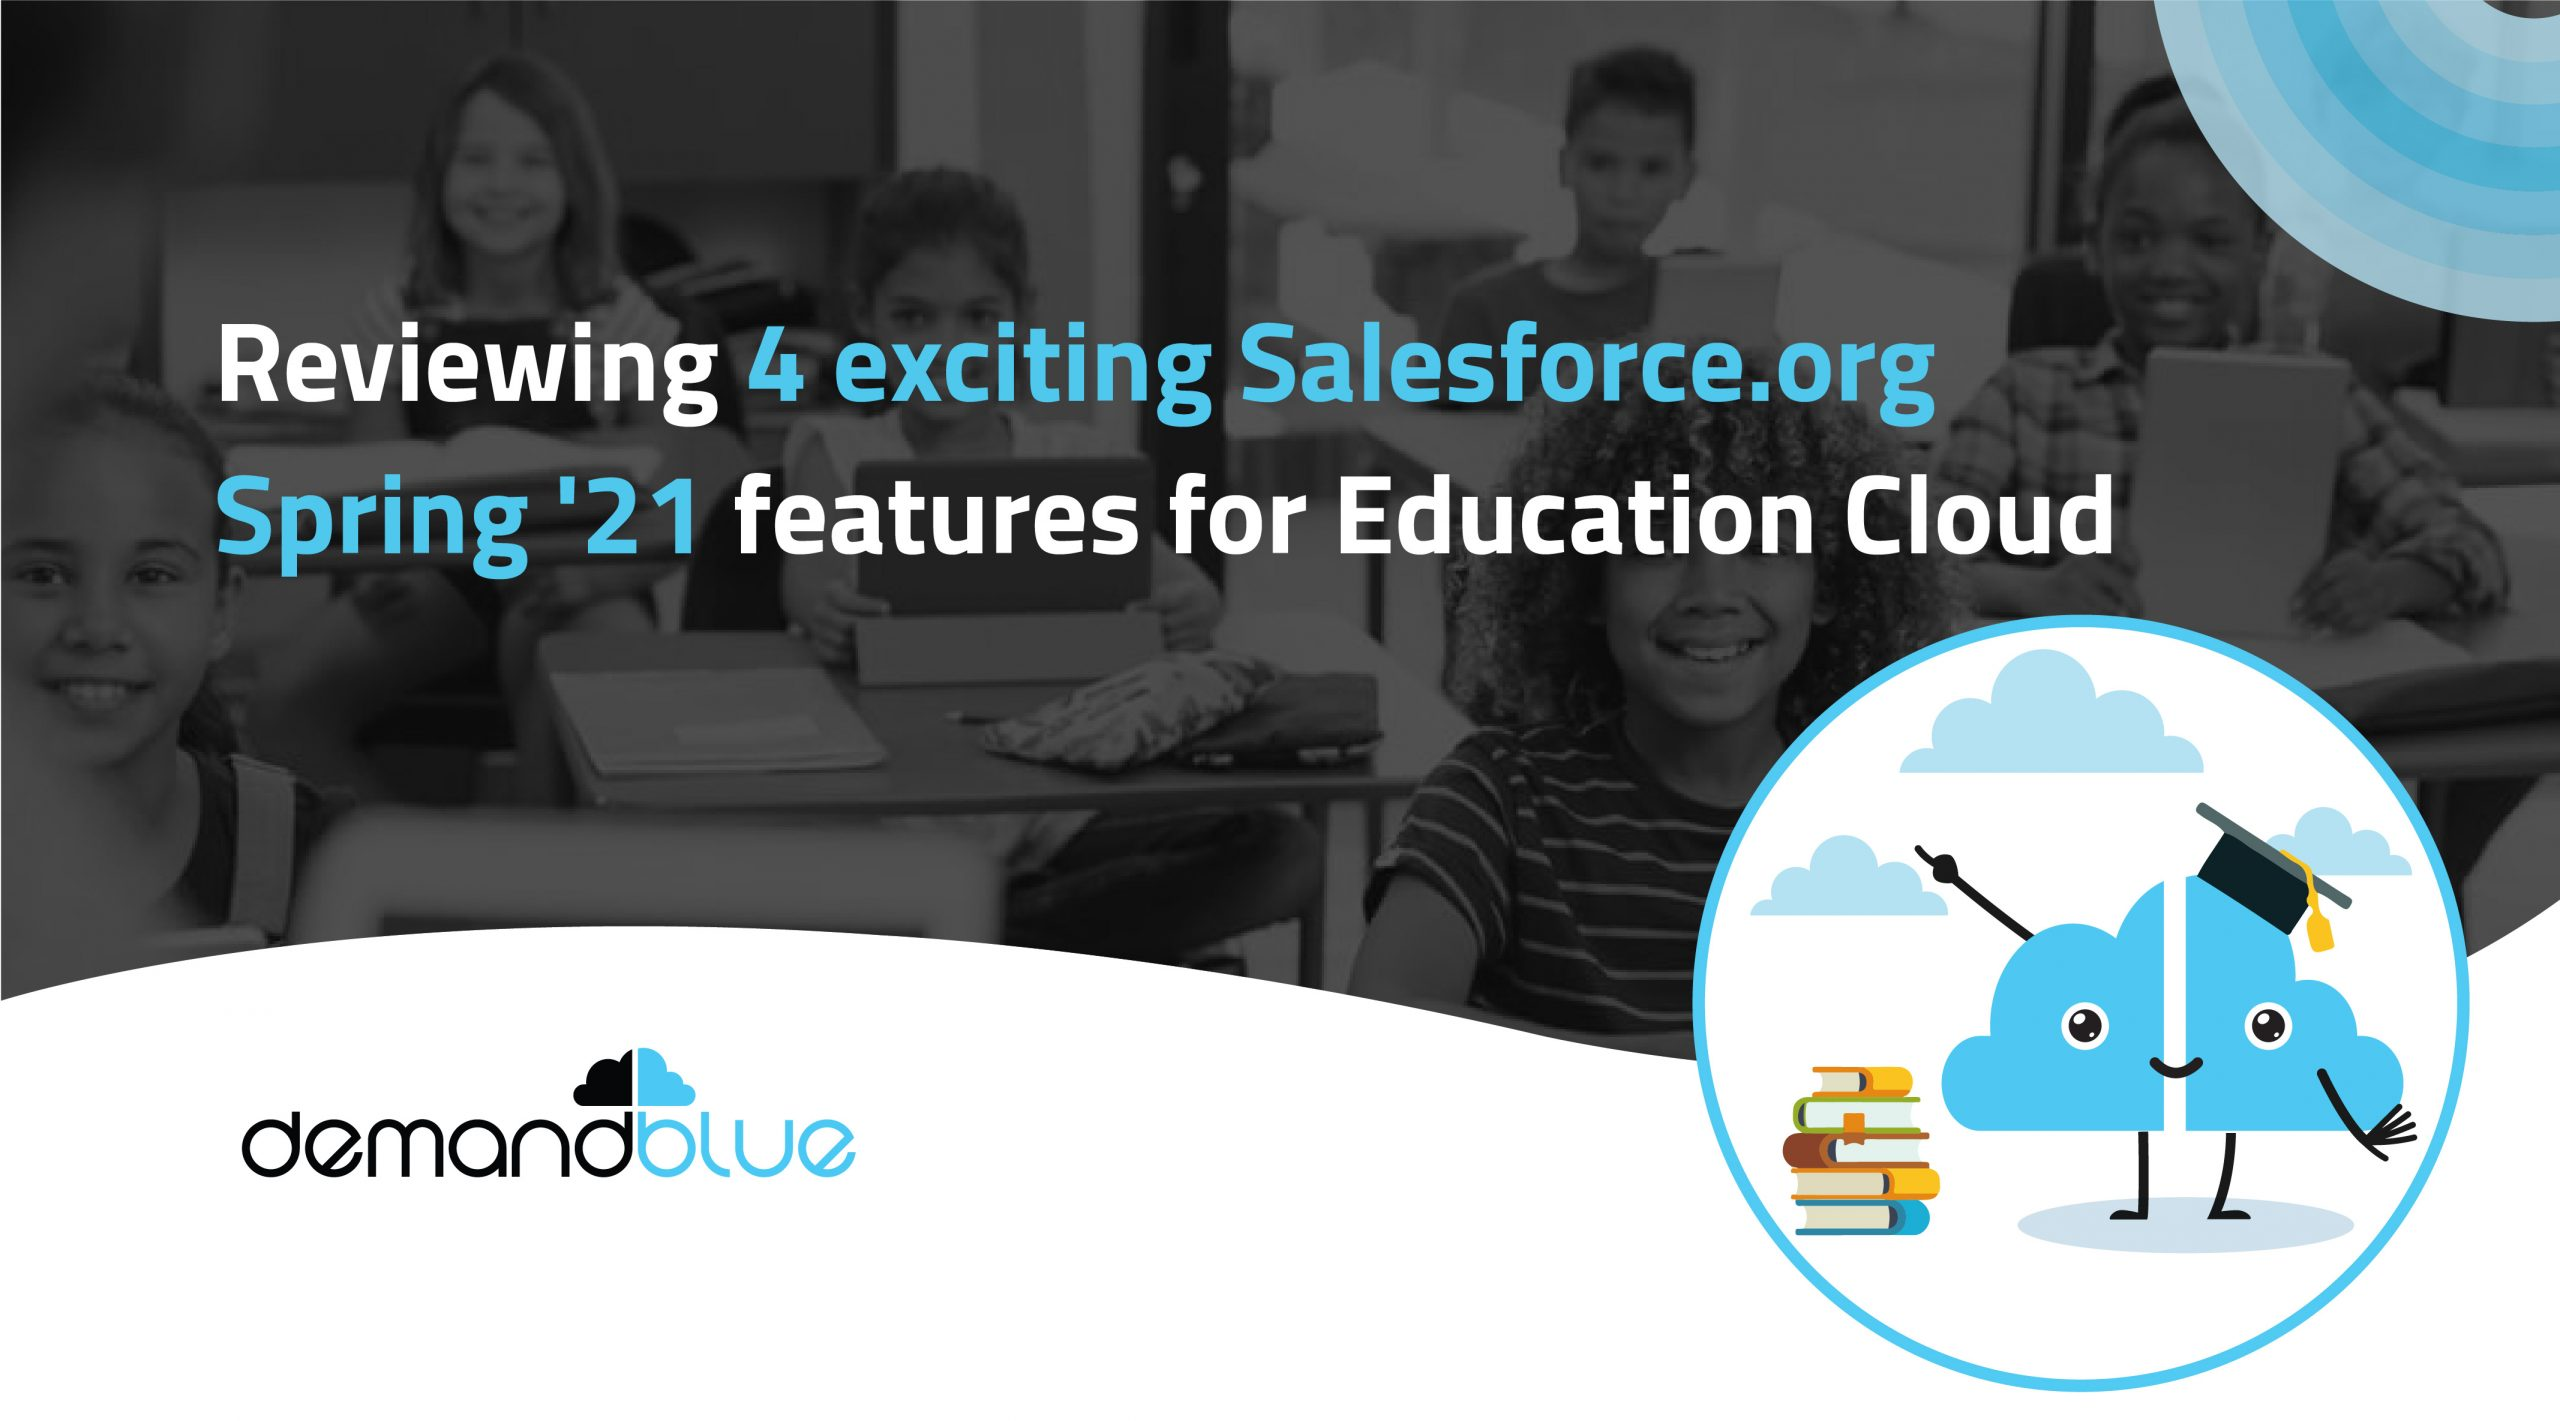 Reviewing 4 exciting Salesforce.org Spring '21 features for Education Cloud